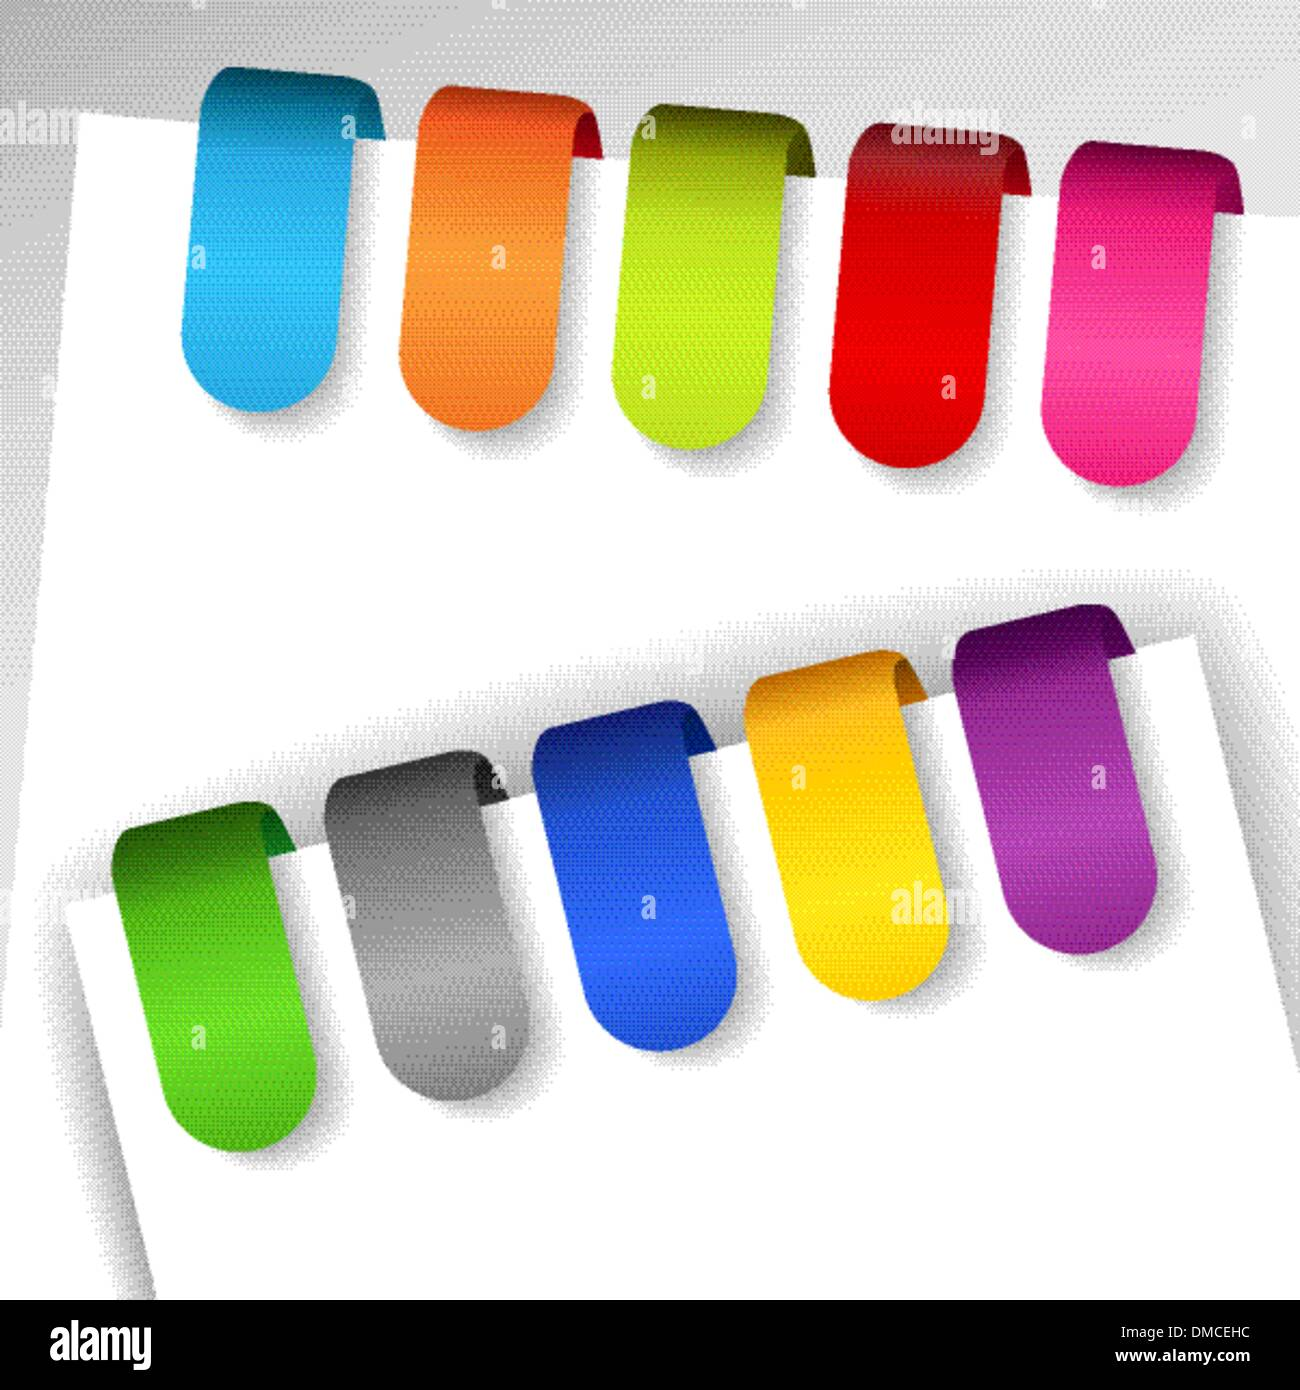 Colorful paper tags - Stock Image